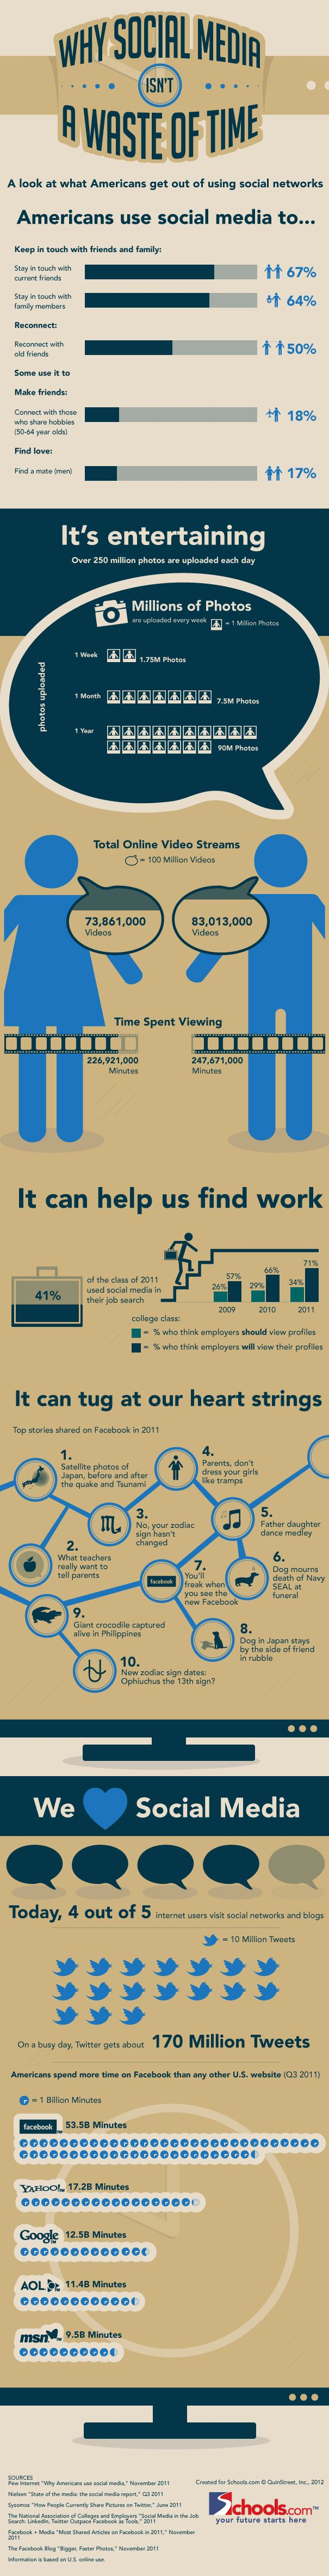 Why Social Media ISN'T a Waste of Time  http://www.bitrebels.com/social/why-social-media-isnt-a-waste-of-time-infograhic/